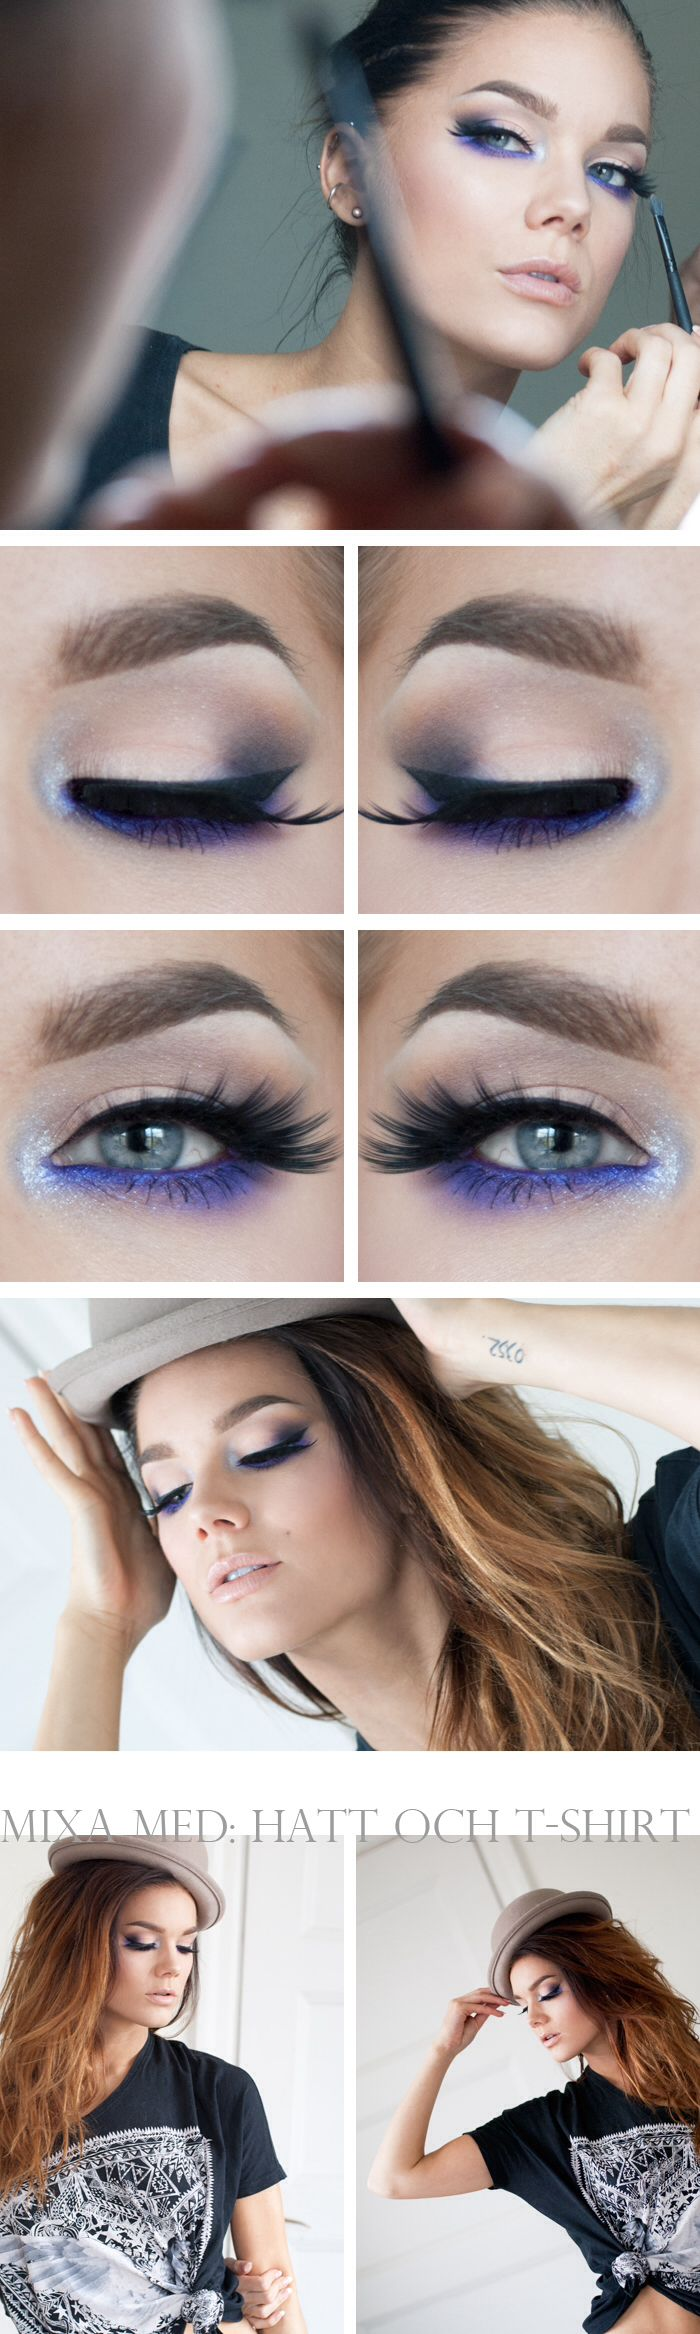 best images about makeup on pinterest mermaids eyeshadow and